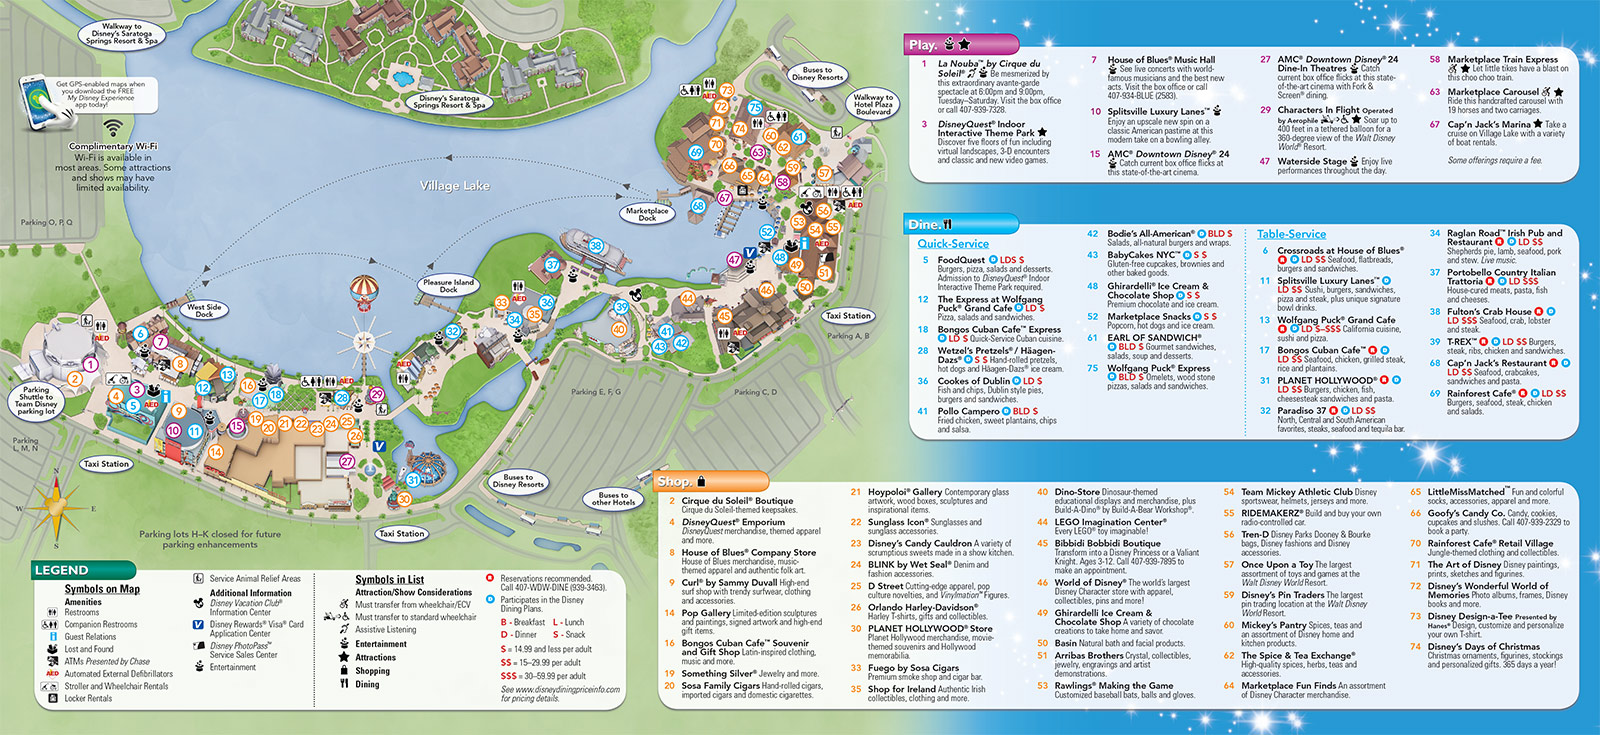 epcot food and wine map with 19010 on 16685 additionally 9827 also 15976 additionally 9748 additionally 10919.